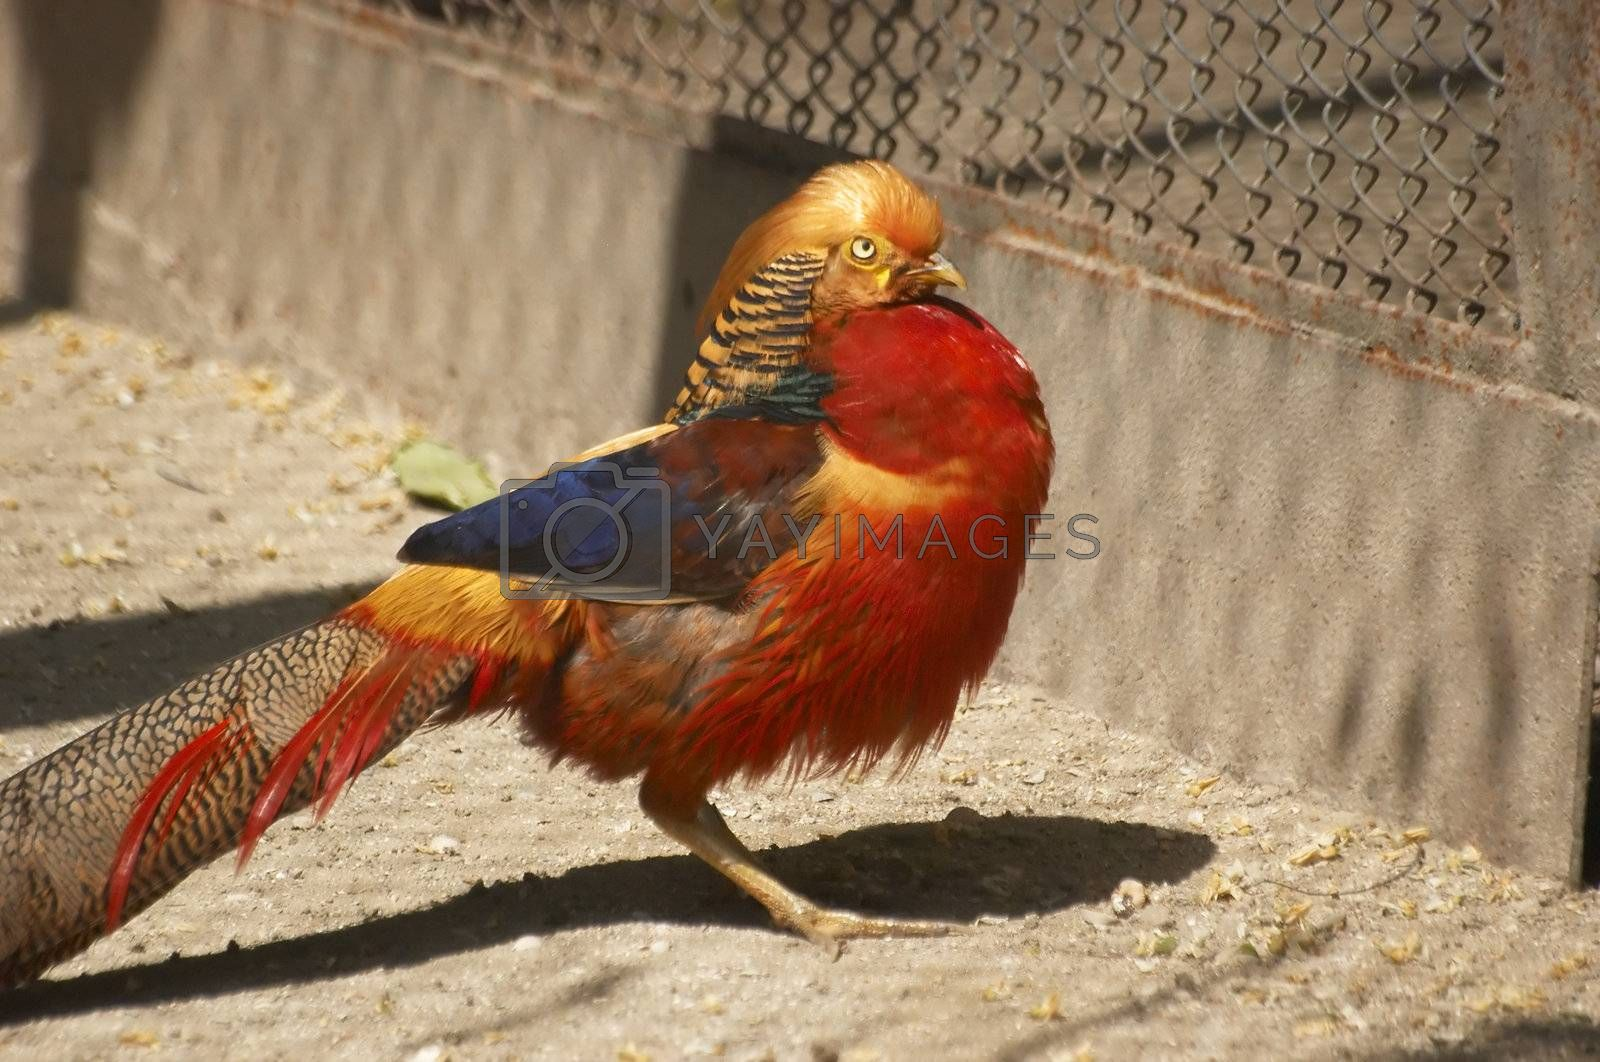 The male of a gold pheasant in a zoological garden open-air cage